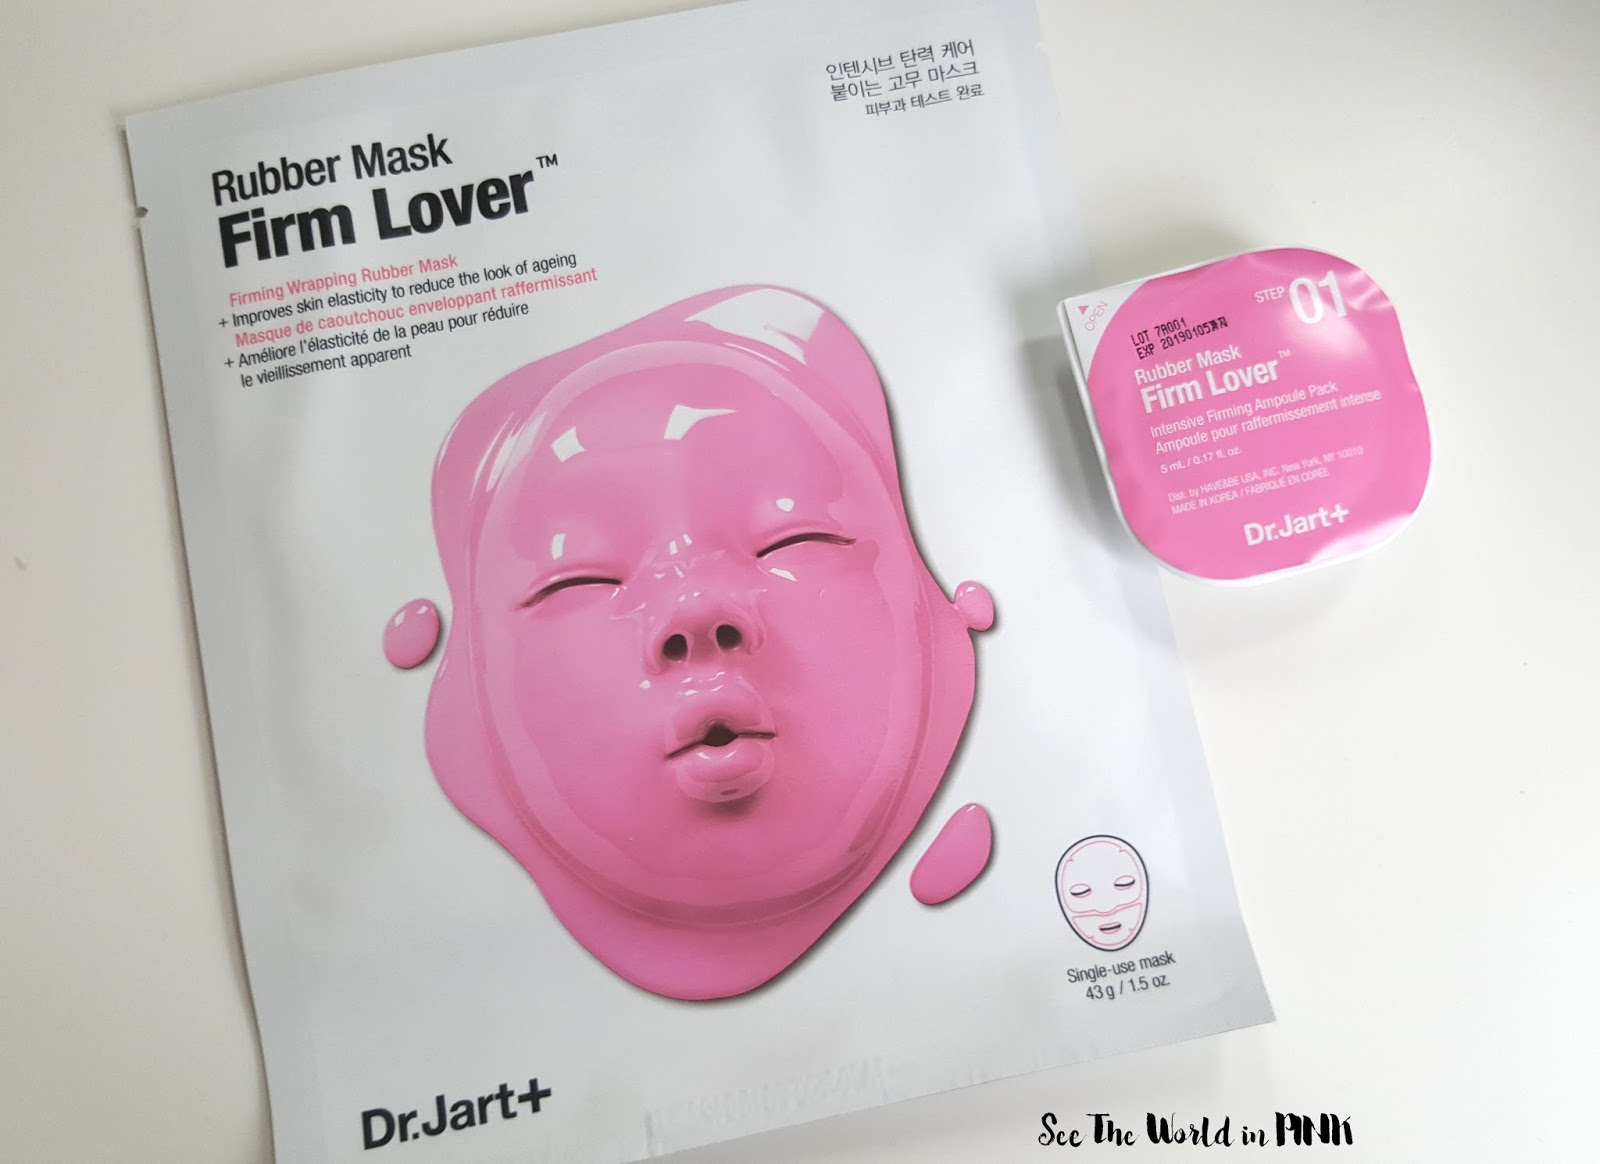 Dr. Jart+ Firm Lover Rubber Mask Review